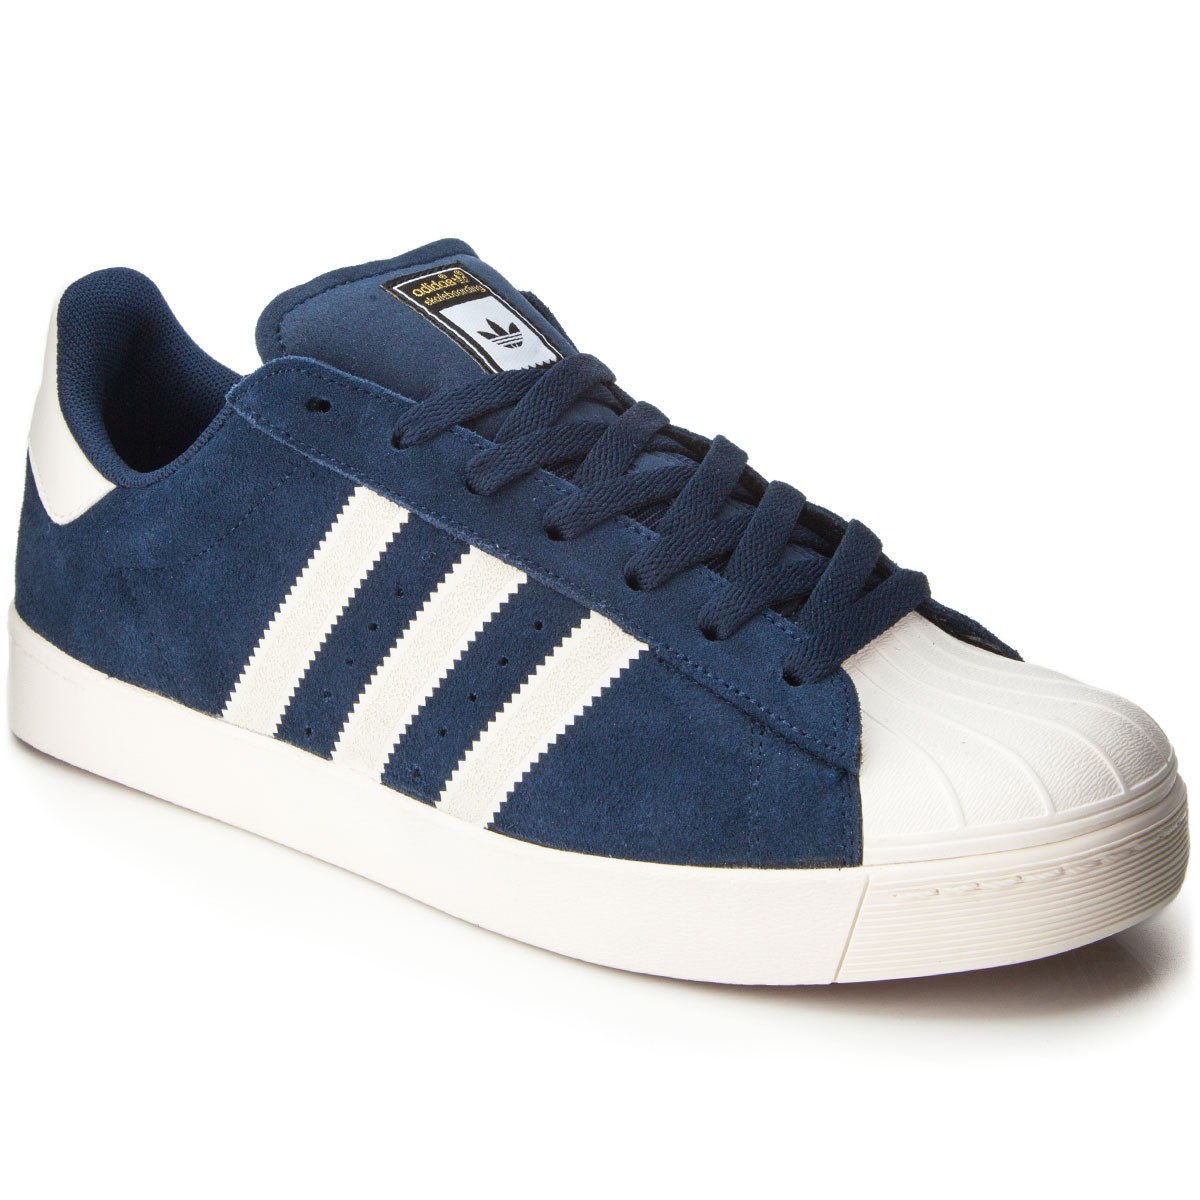 Rode Cheap Adidas sneakers superstar supercolor, Cheap Adidas eqt support adv